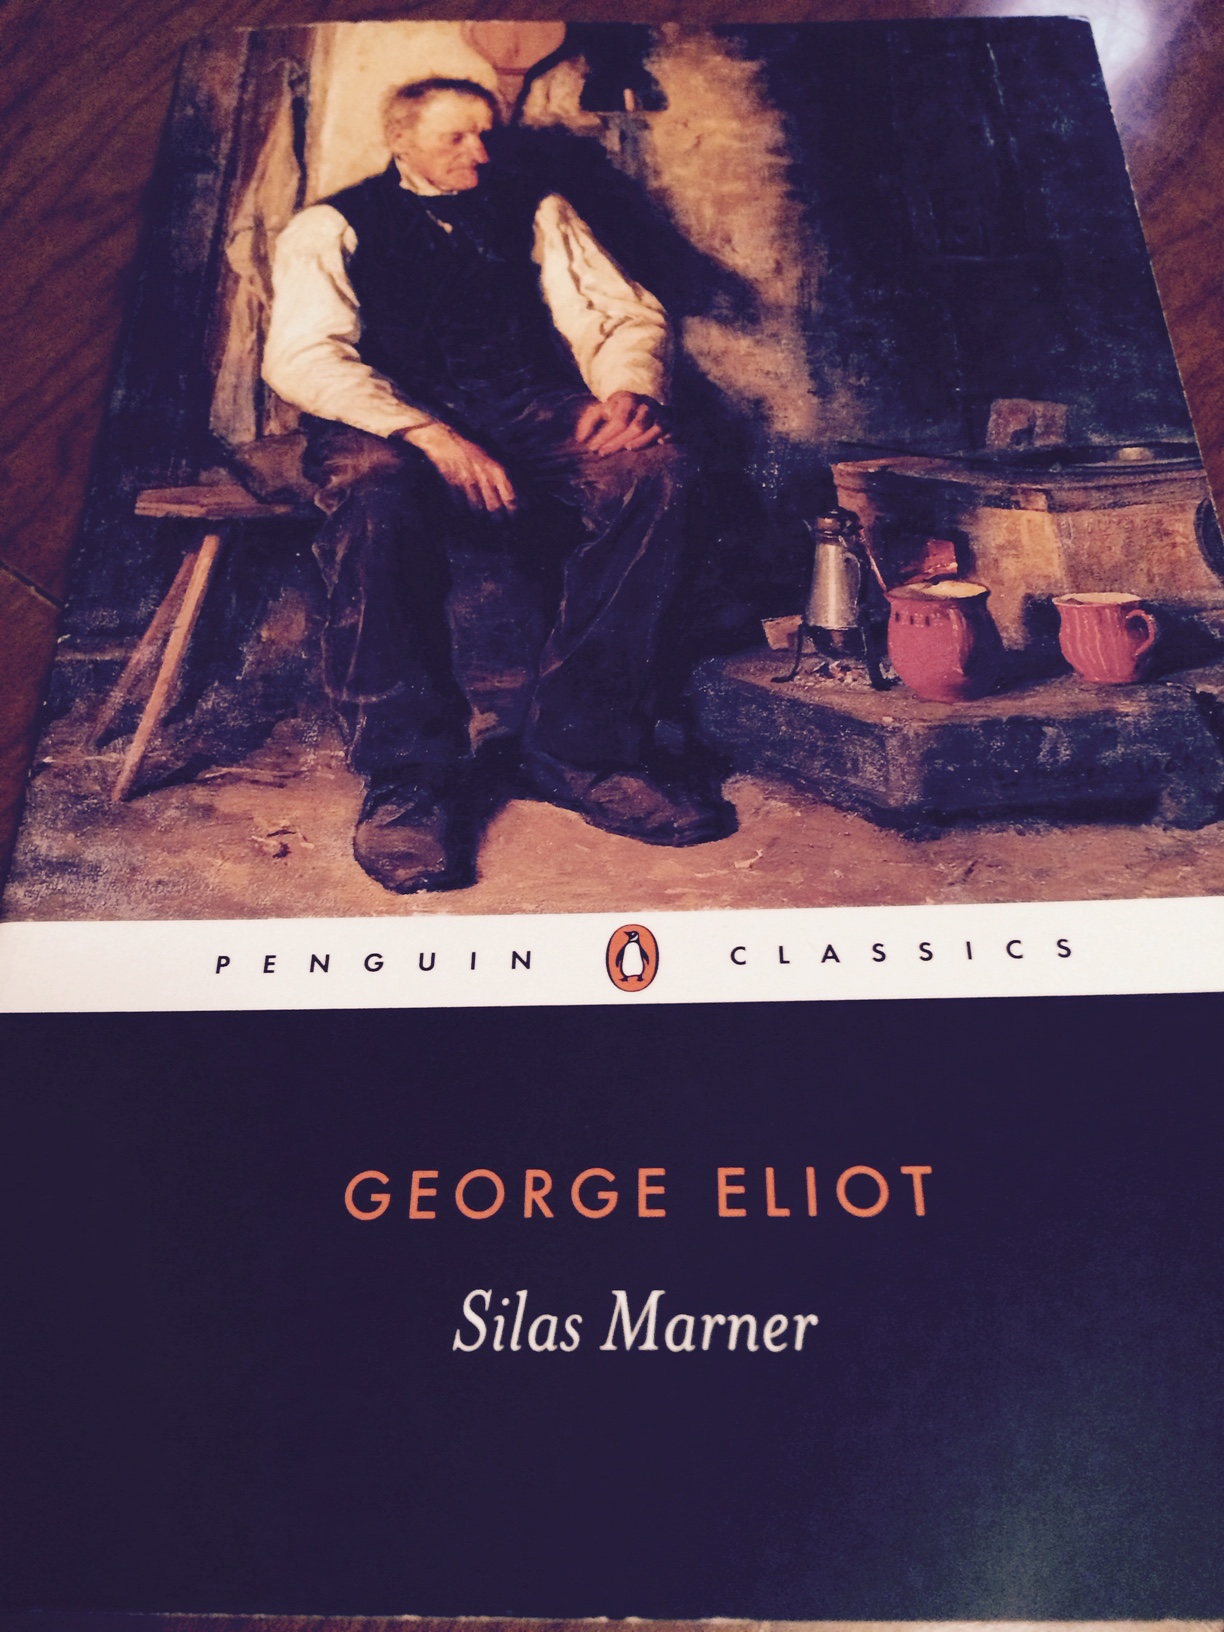 an analysis of the symbolism in silas marner a book by george eliot Literary & analytical comparison of symbols in silas marner & mrs warren's profession literary analysis of role and characterisation of eppie in silas marner by george eliot (a victorian classic) advertisements previous post book review / summary: silas marner.